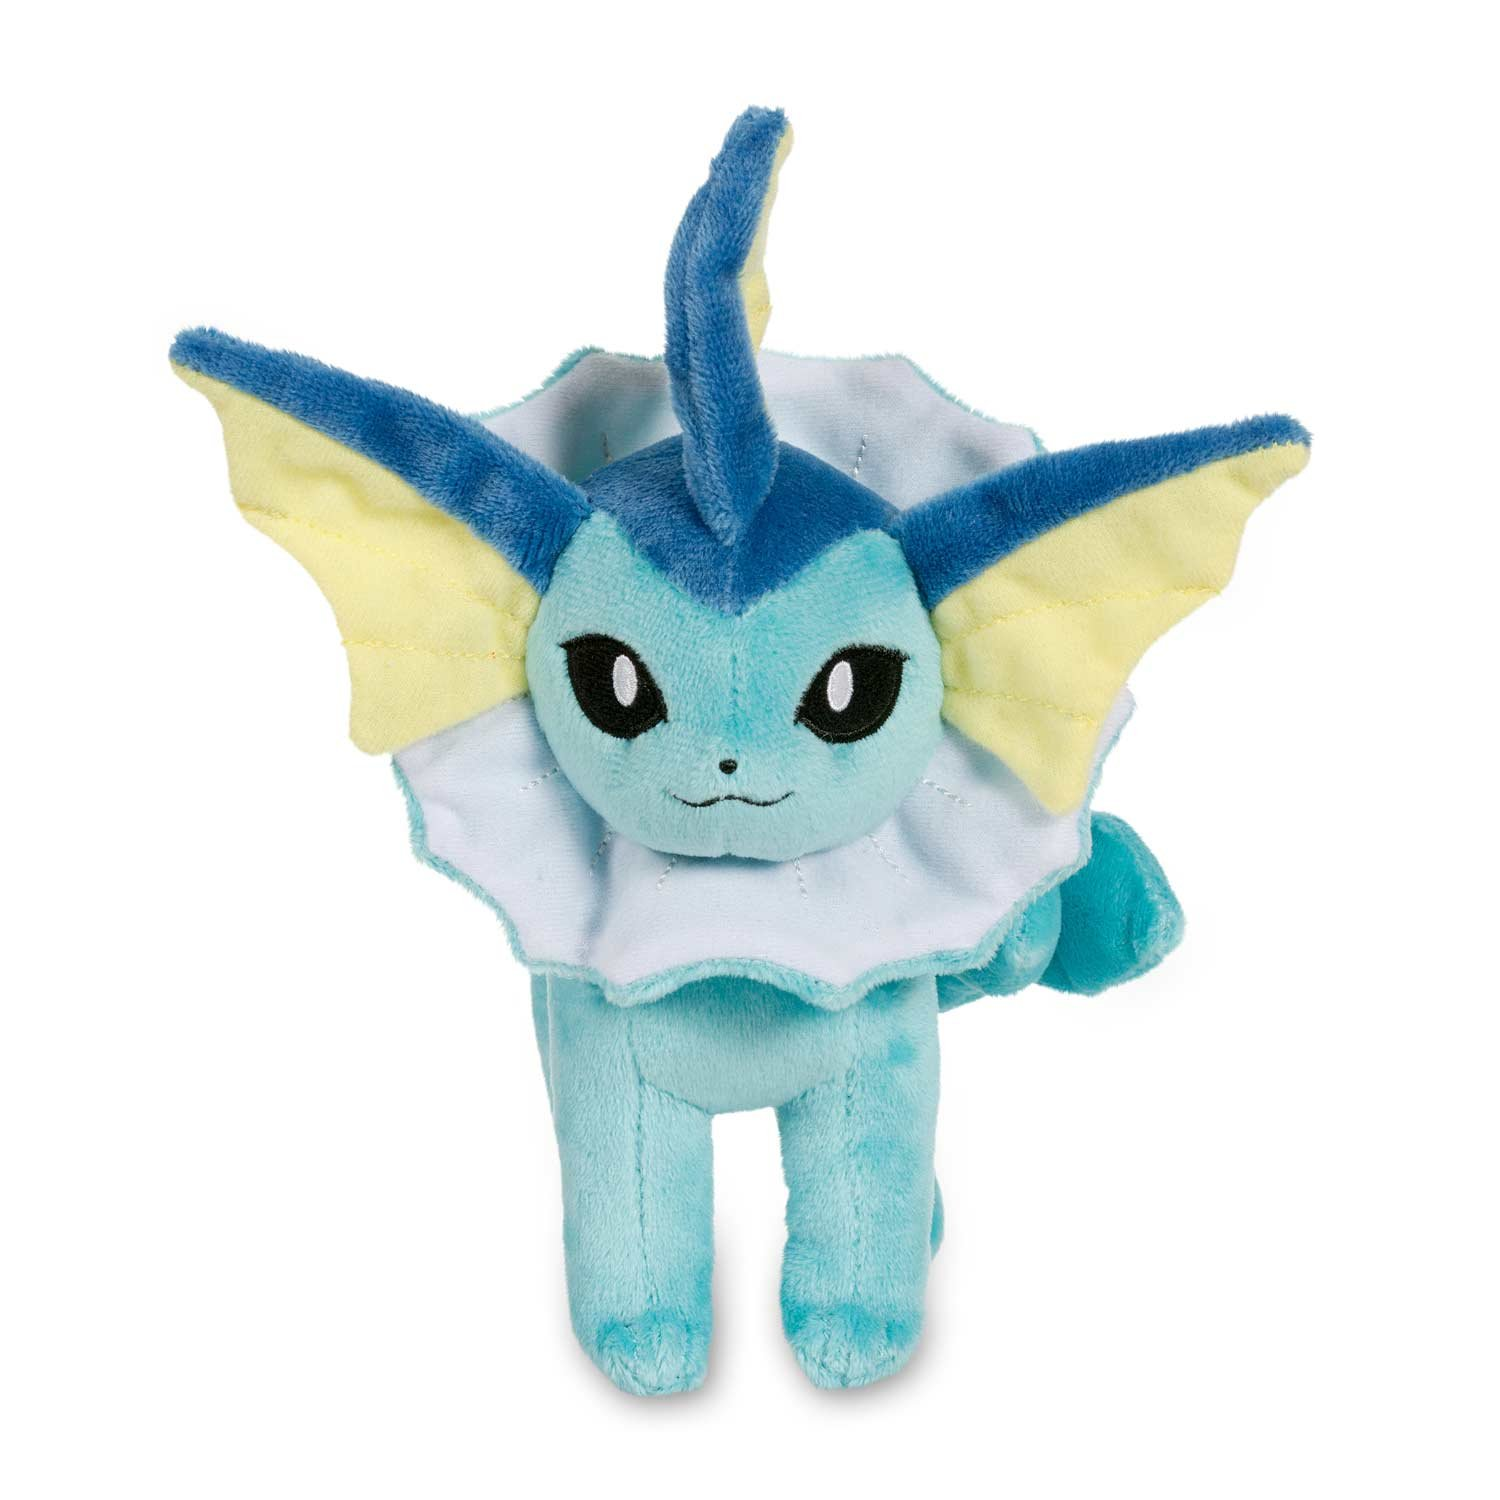 POKEMON - VAPOREON PLUSH TOY 20cm / 8' The Pok?mon Company International Inc. 820650009730